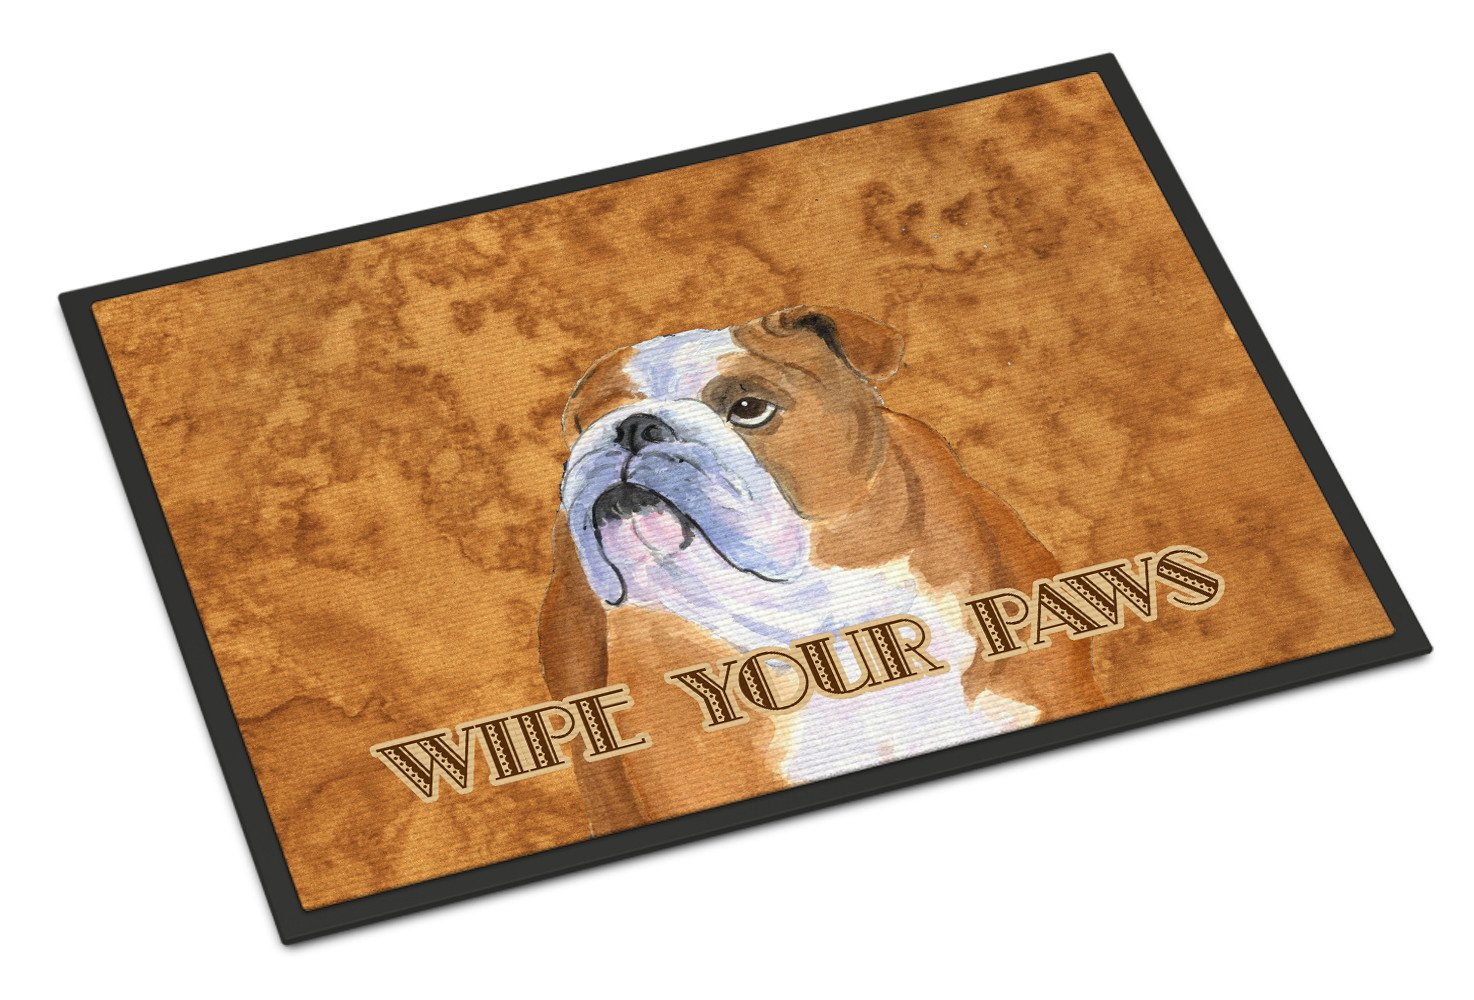 Bulldog English Wipe your Paws Indoor or Outdoor Mat 18x27 SS4893MAT - the-store.com